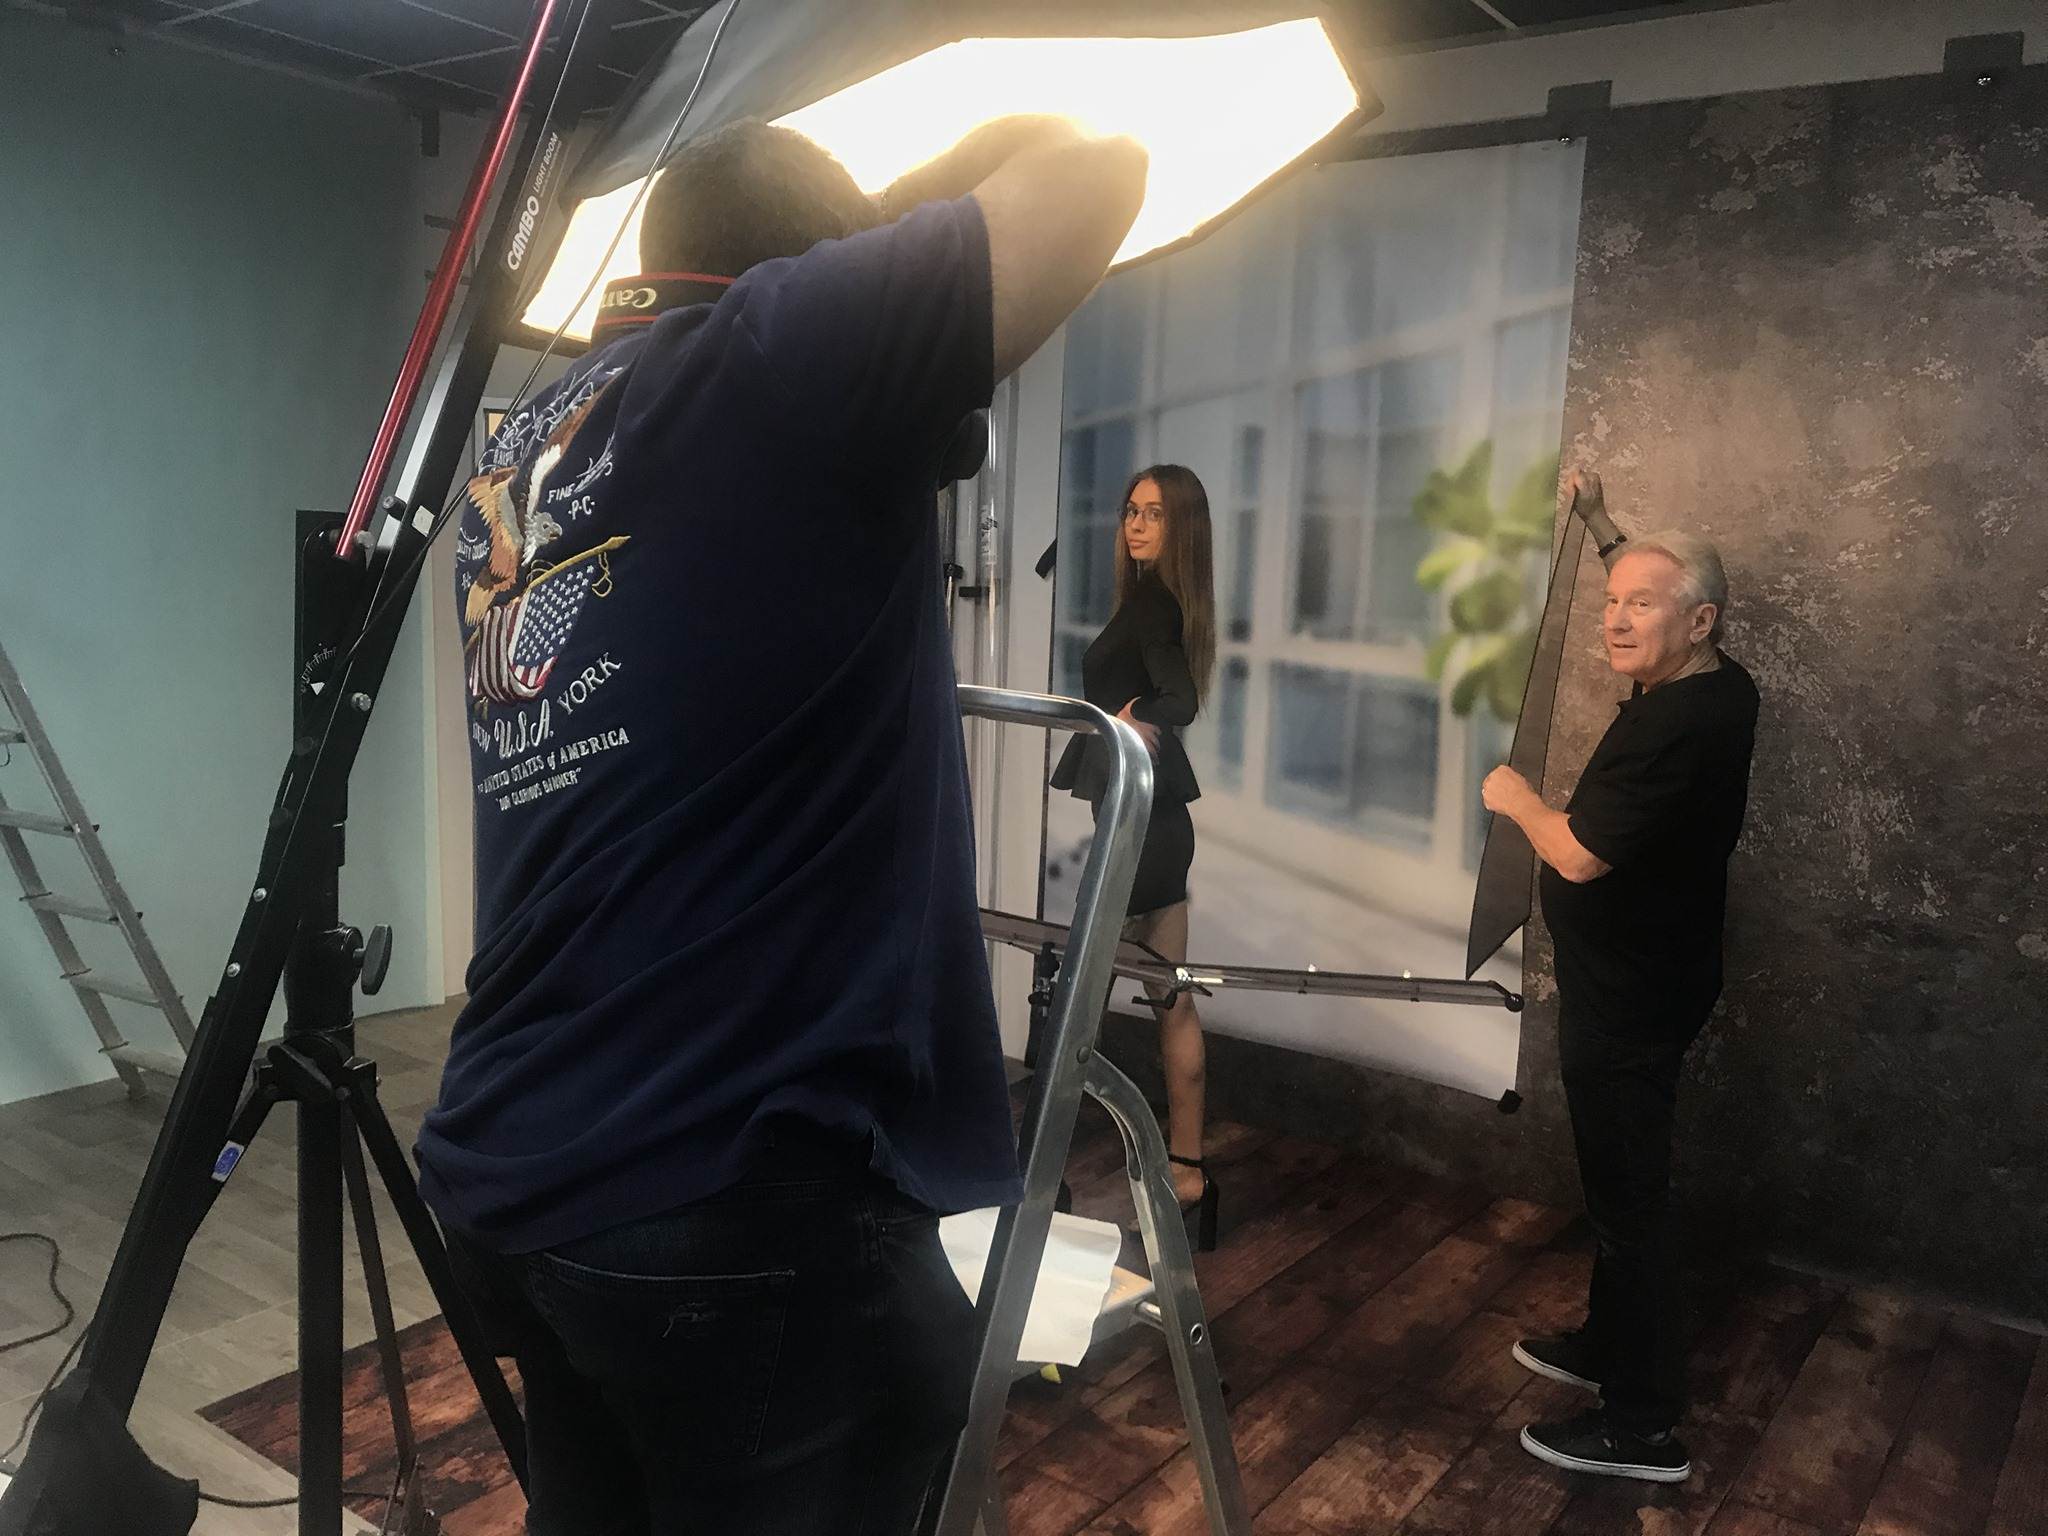 Demonstrating how to use one photographic light in Studio lighting training